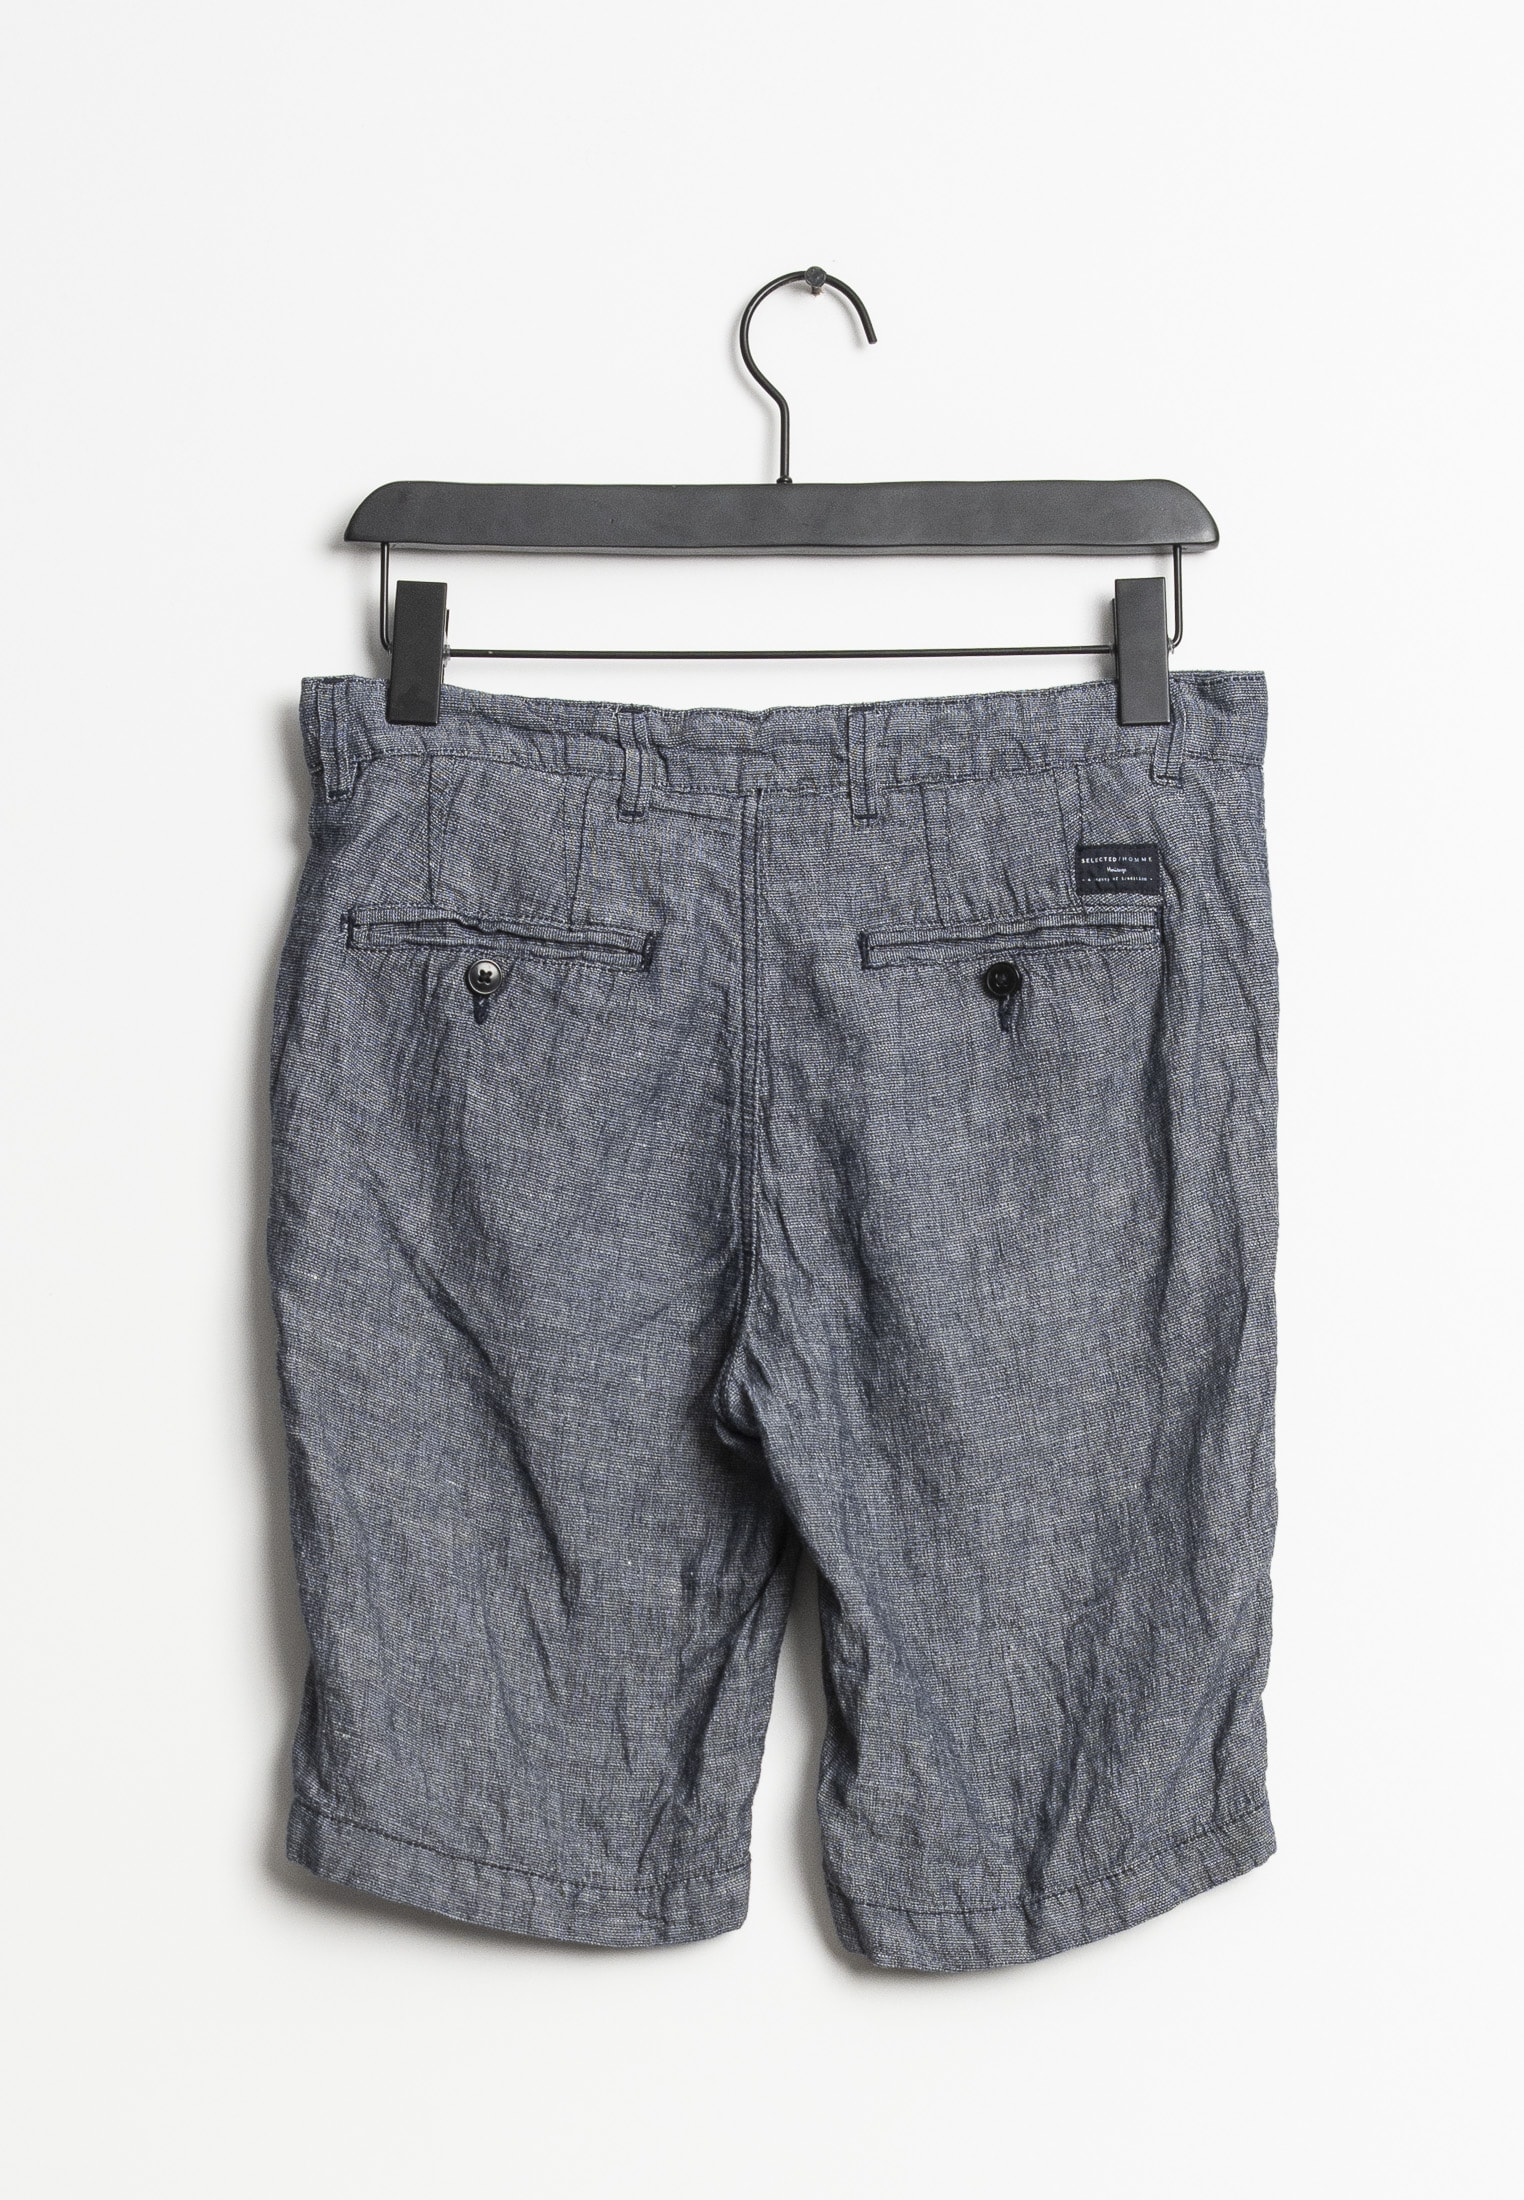 Selected Homme Shorts Grau Gr.S